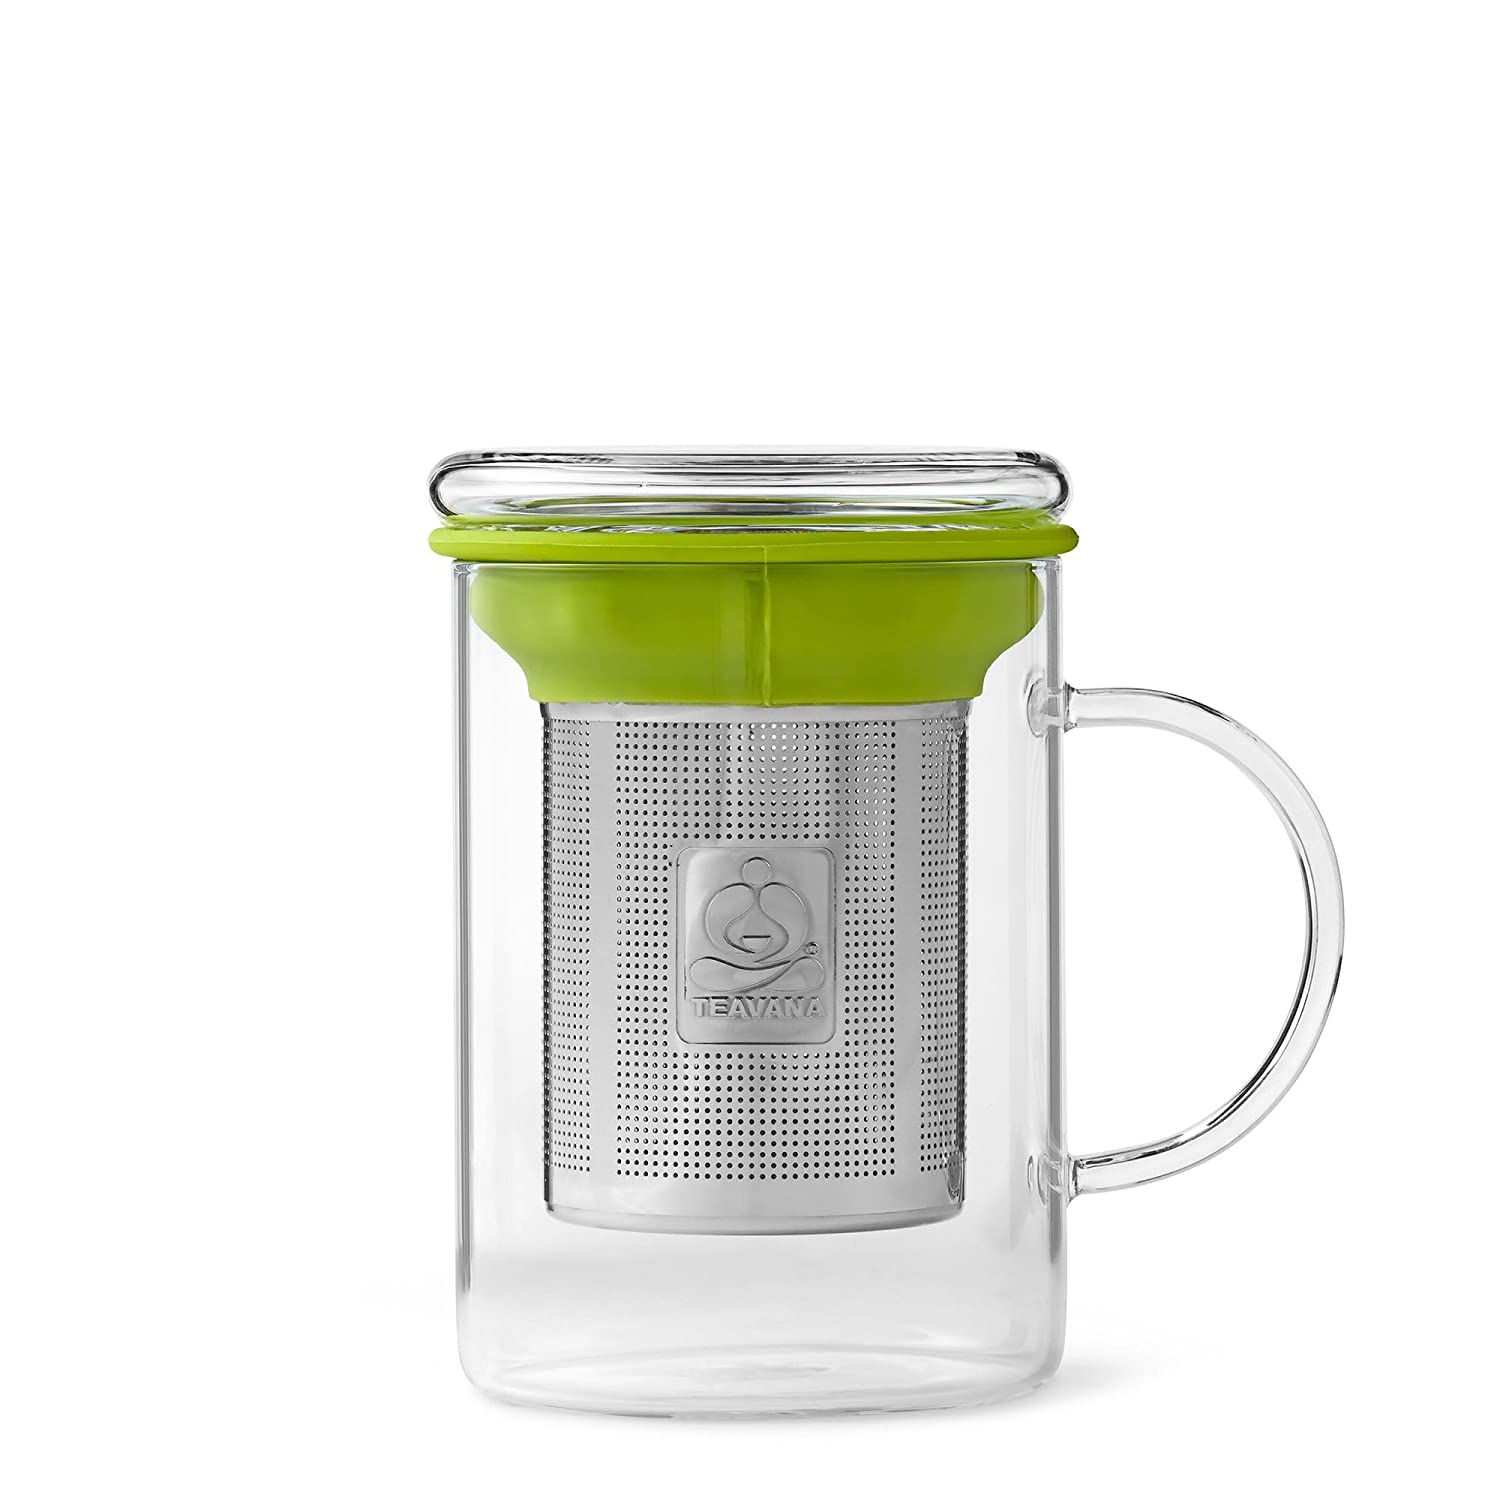 Green Remi Glass Tea Mug with Stainless Steel Infuser by Teavana 30417-014